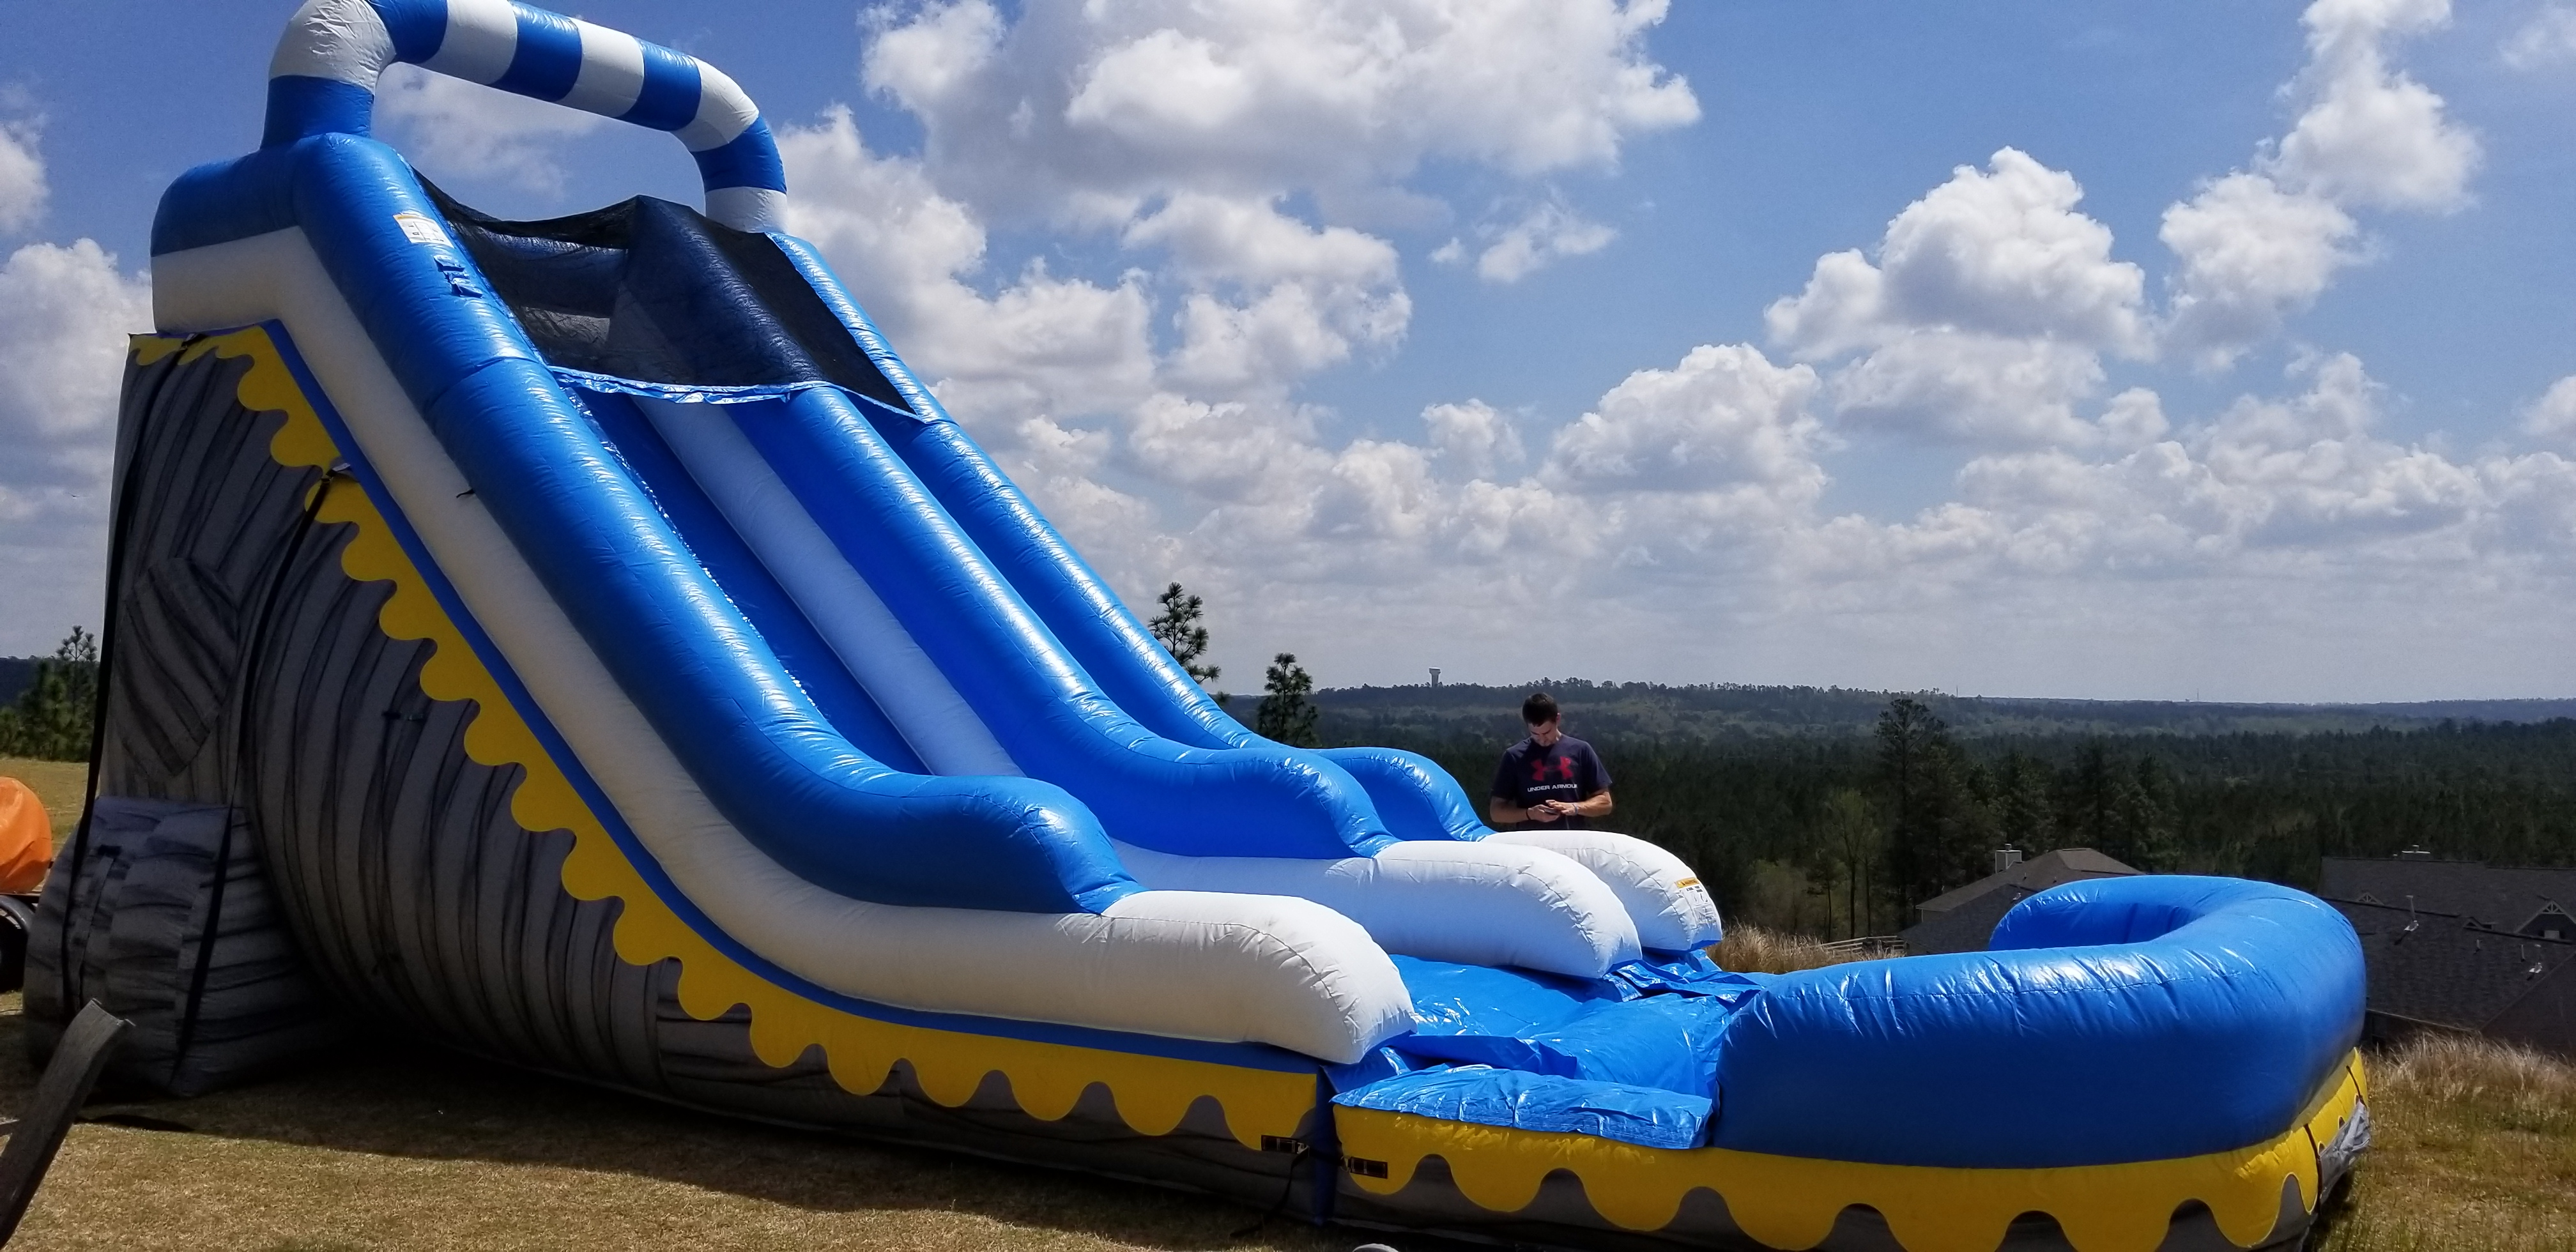 water slide rental aiken sc, water slide rental augusta ga